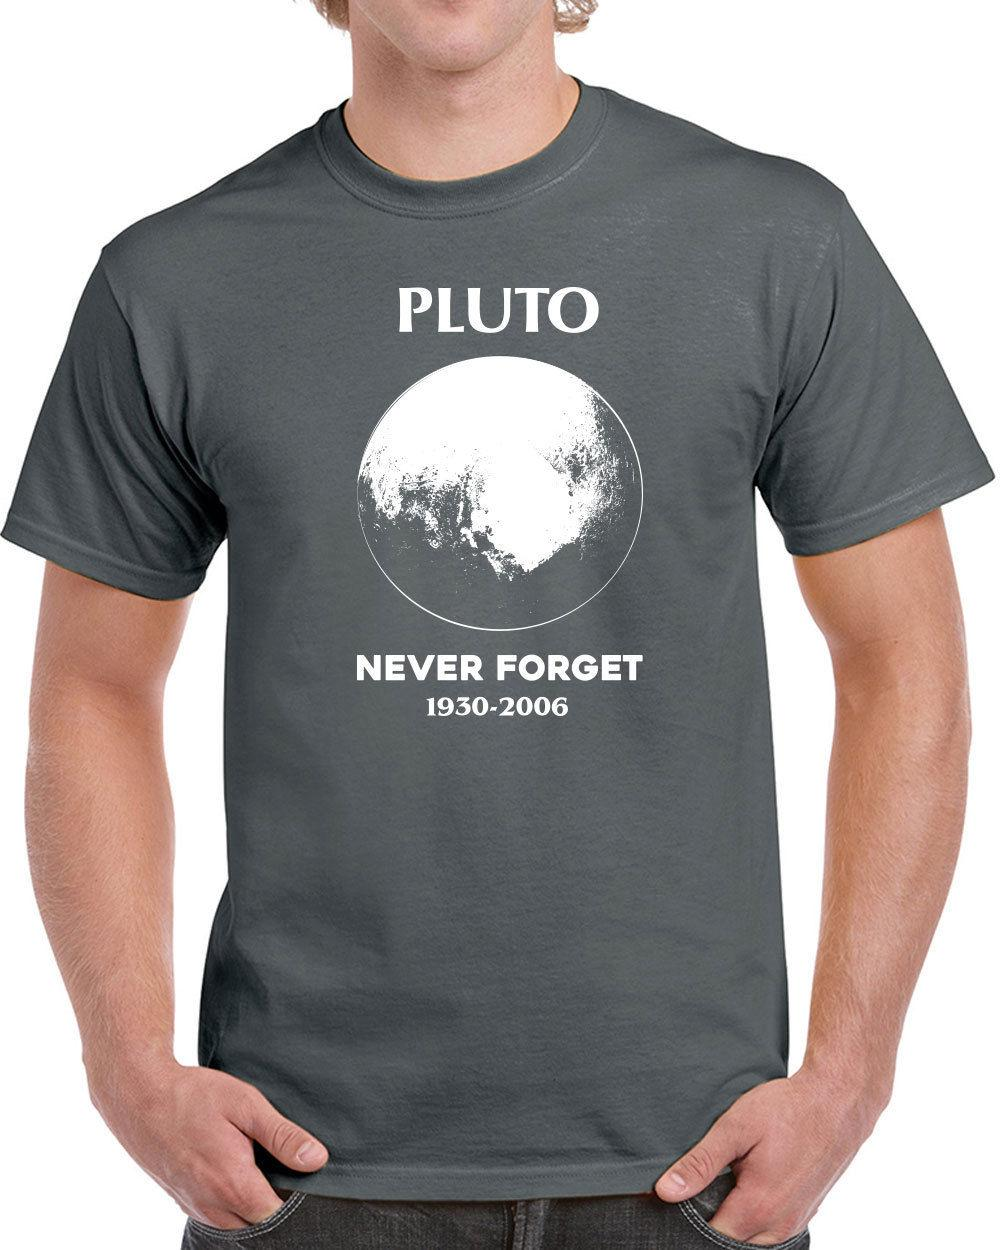 b60239d54 Details Zu 578 Never Forget Pluto Mens T Shirt Science Funny Planets  Astronomy New Solar Funny Unisex Casual Tee Gift That T Shirt But T Shirts  From ...